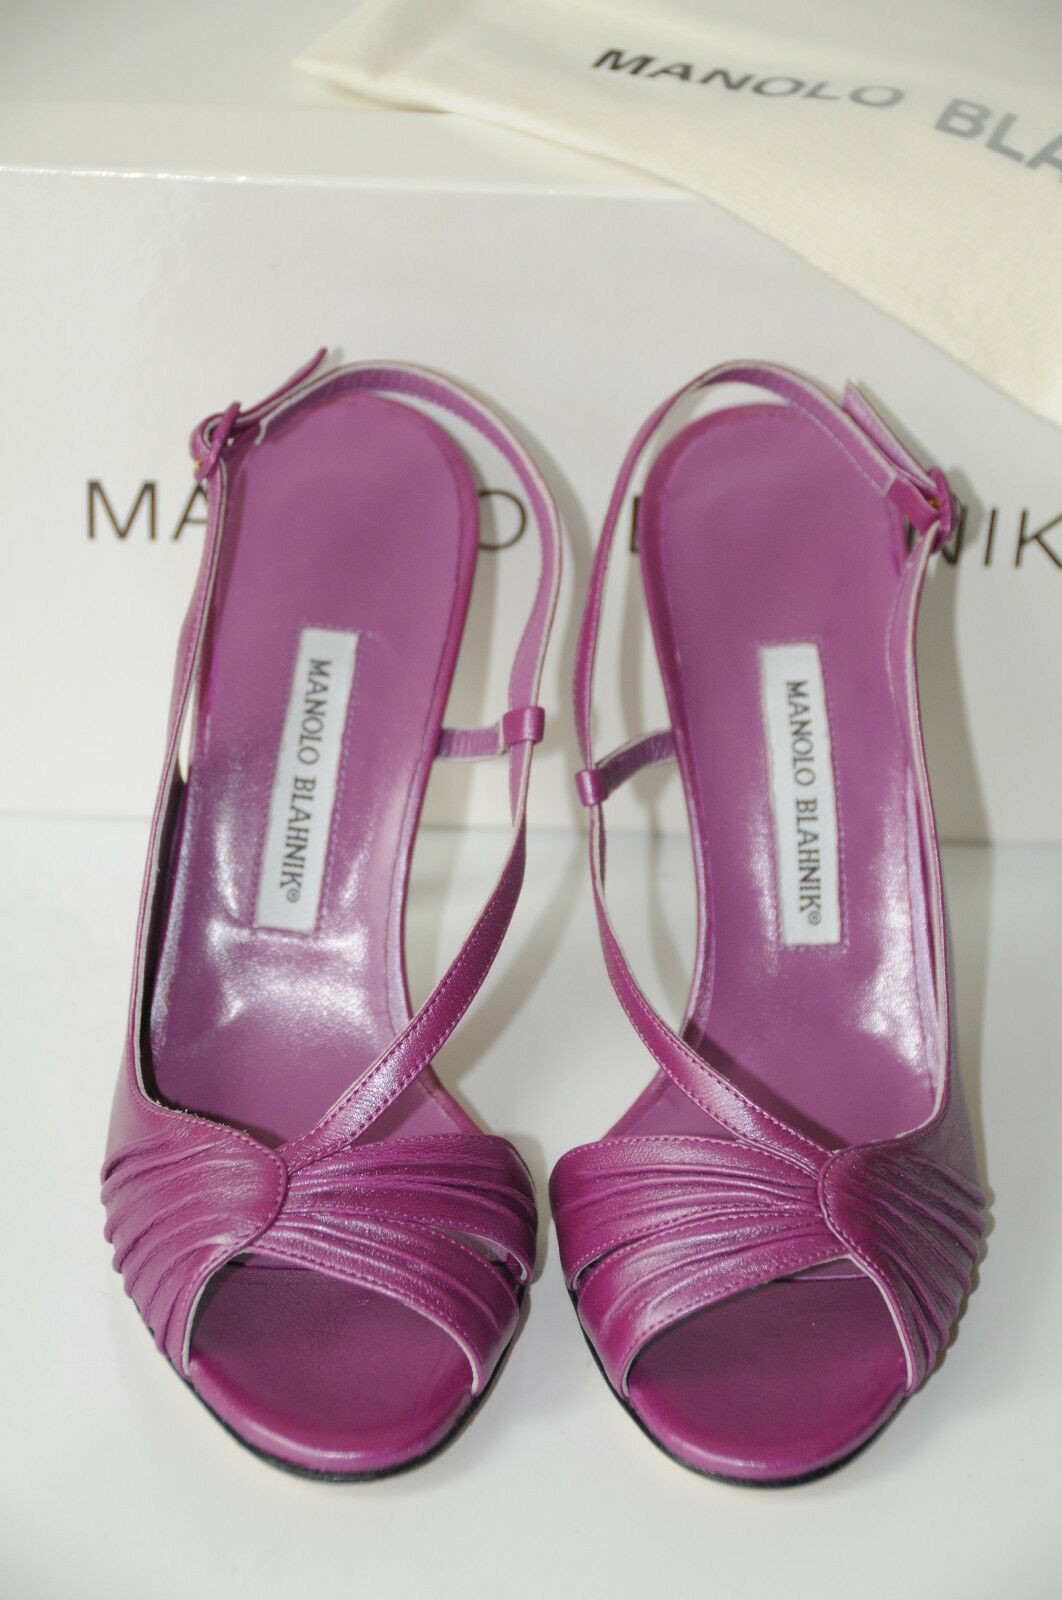 $925 New Manolo Blahnik Riccia Riccia Riccia 105 Purple Sheen  Leder schuhes Sandals 40.5 e1b88e